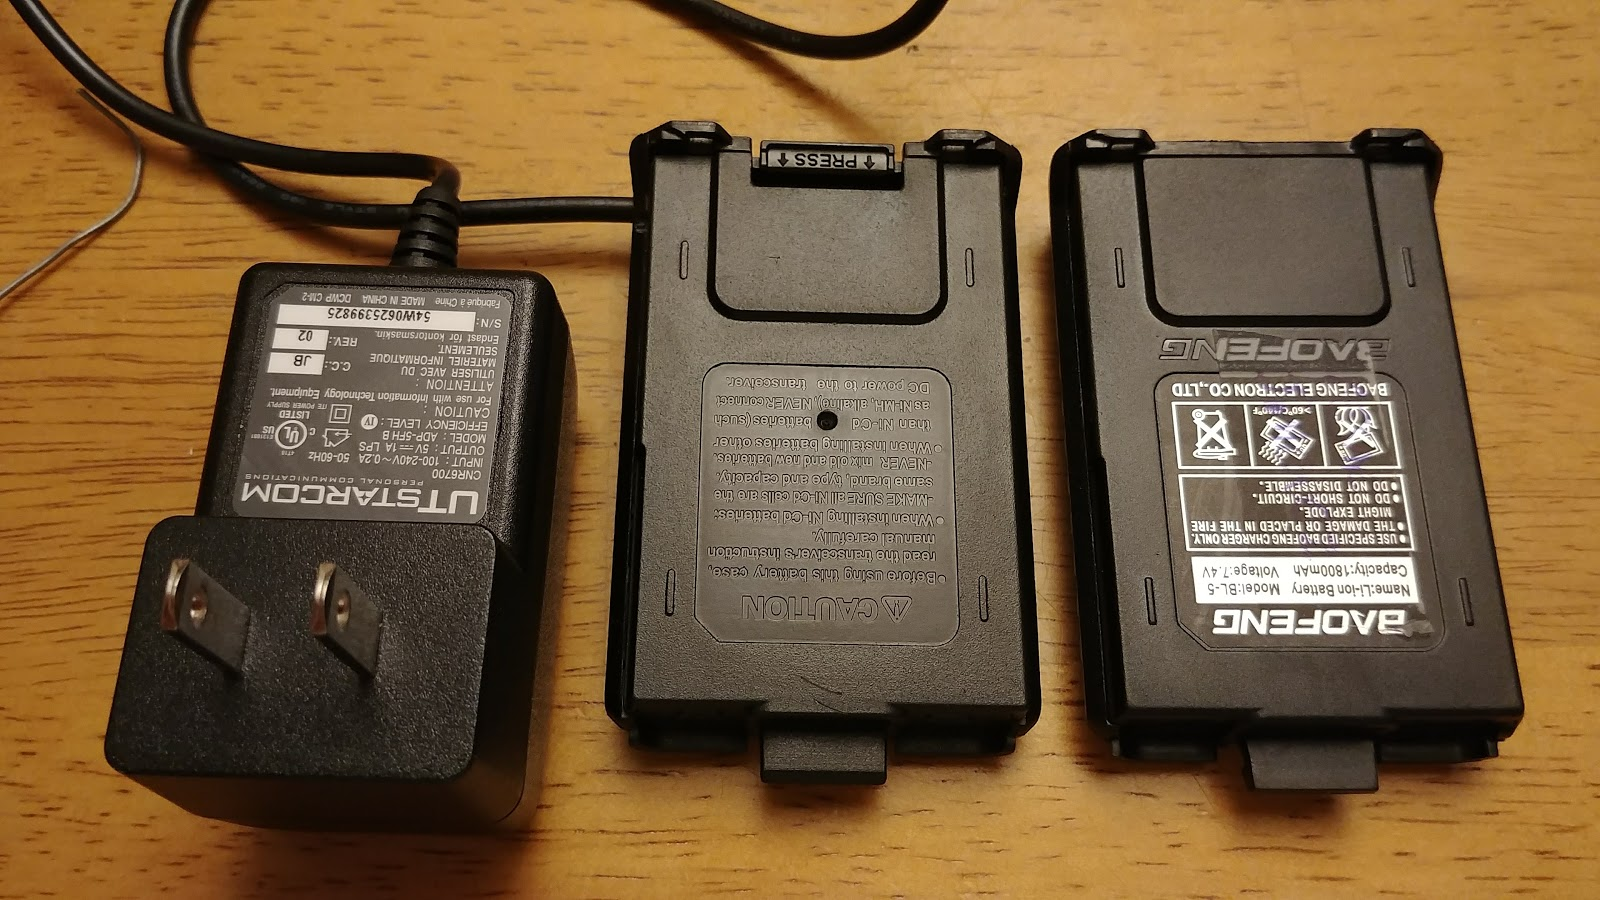 Baofeng UV-5R external power mod | Internet Tablets and MID